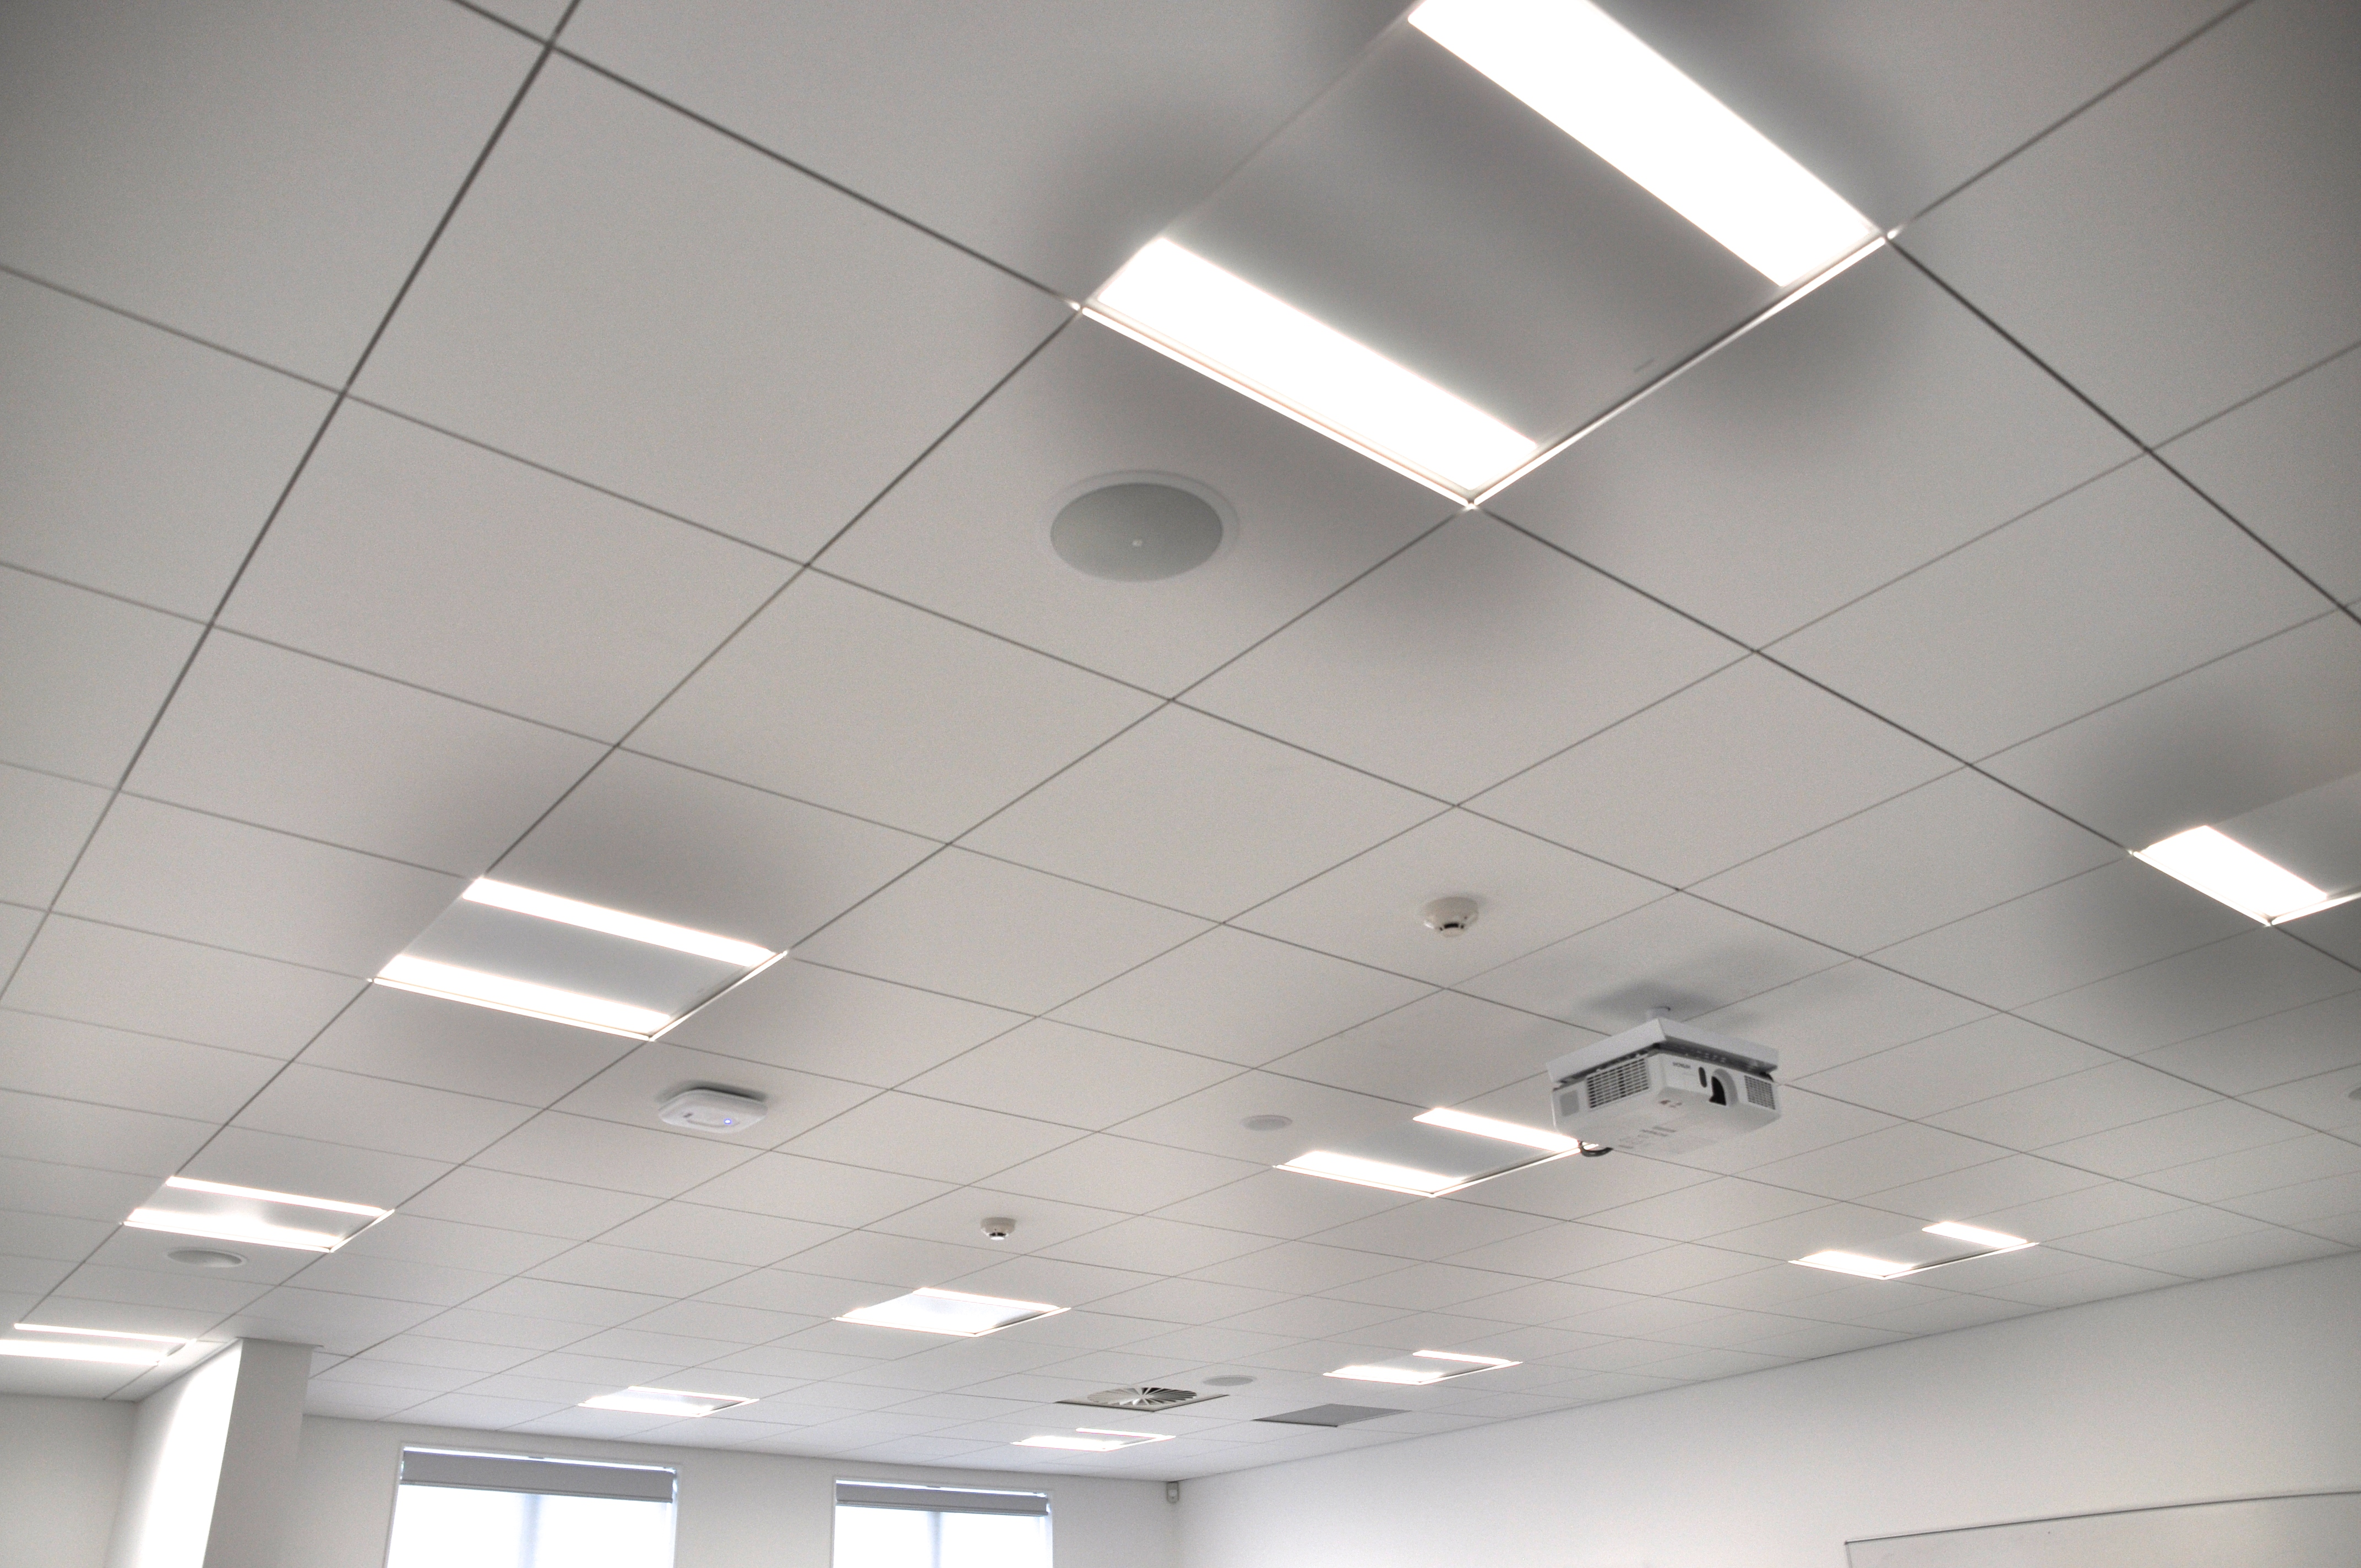 100 amf ceiling tiles ceiling tiles suspended ceilings ceiling panels amf thermatex sf acoustic potter interior systems dailygadgetfo Image collections